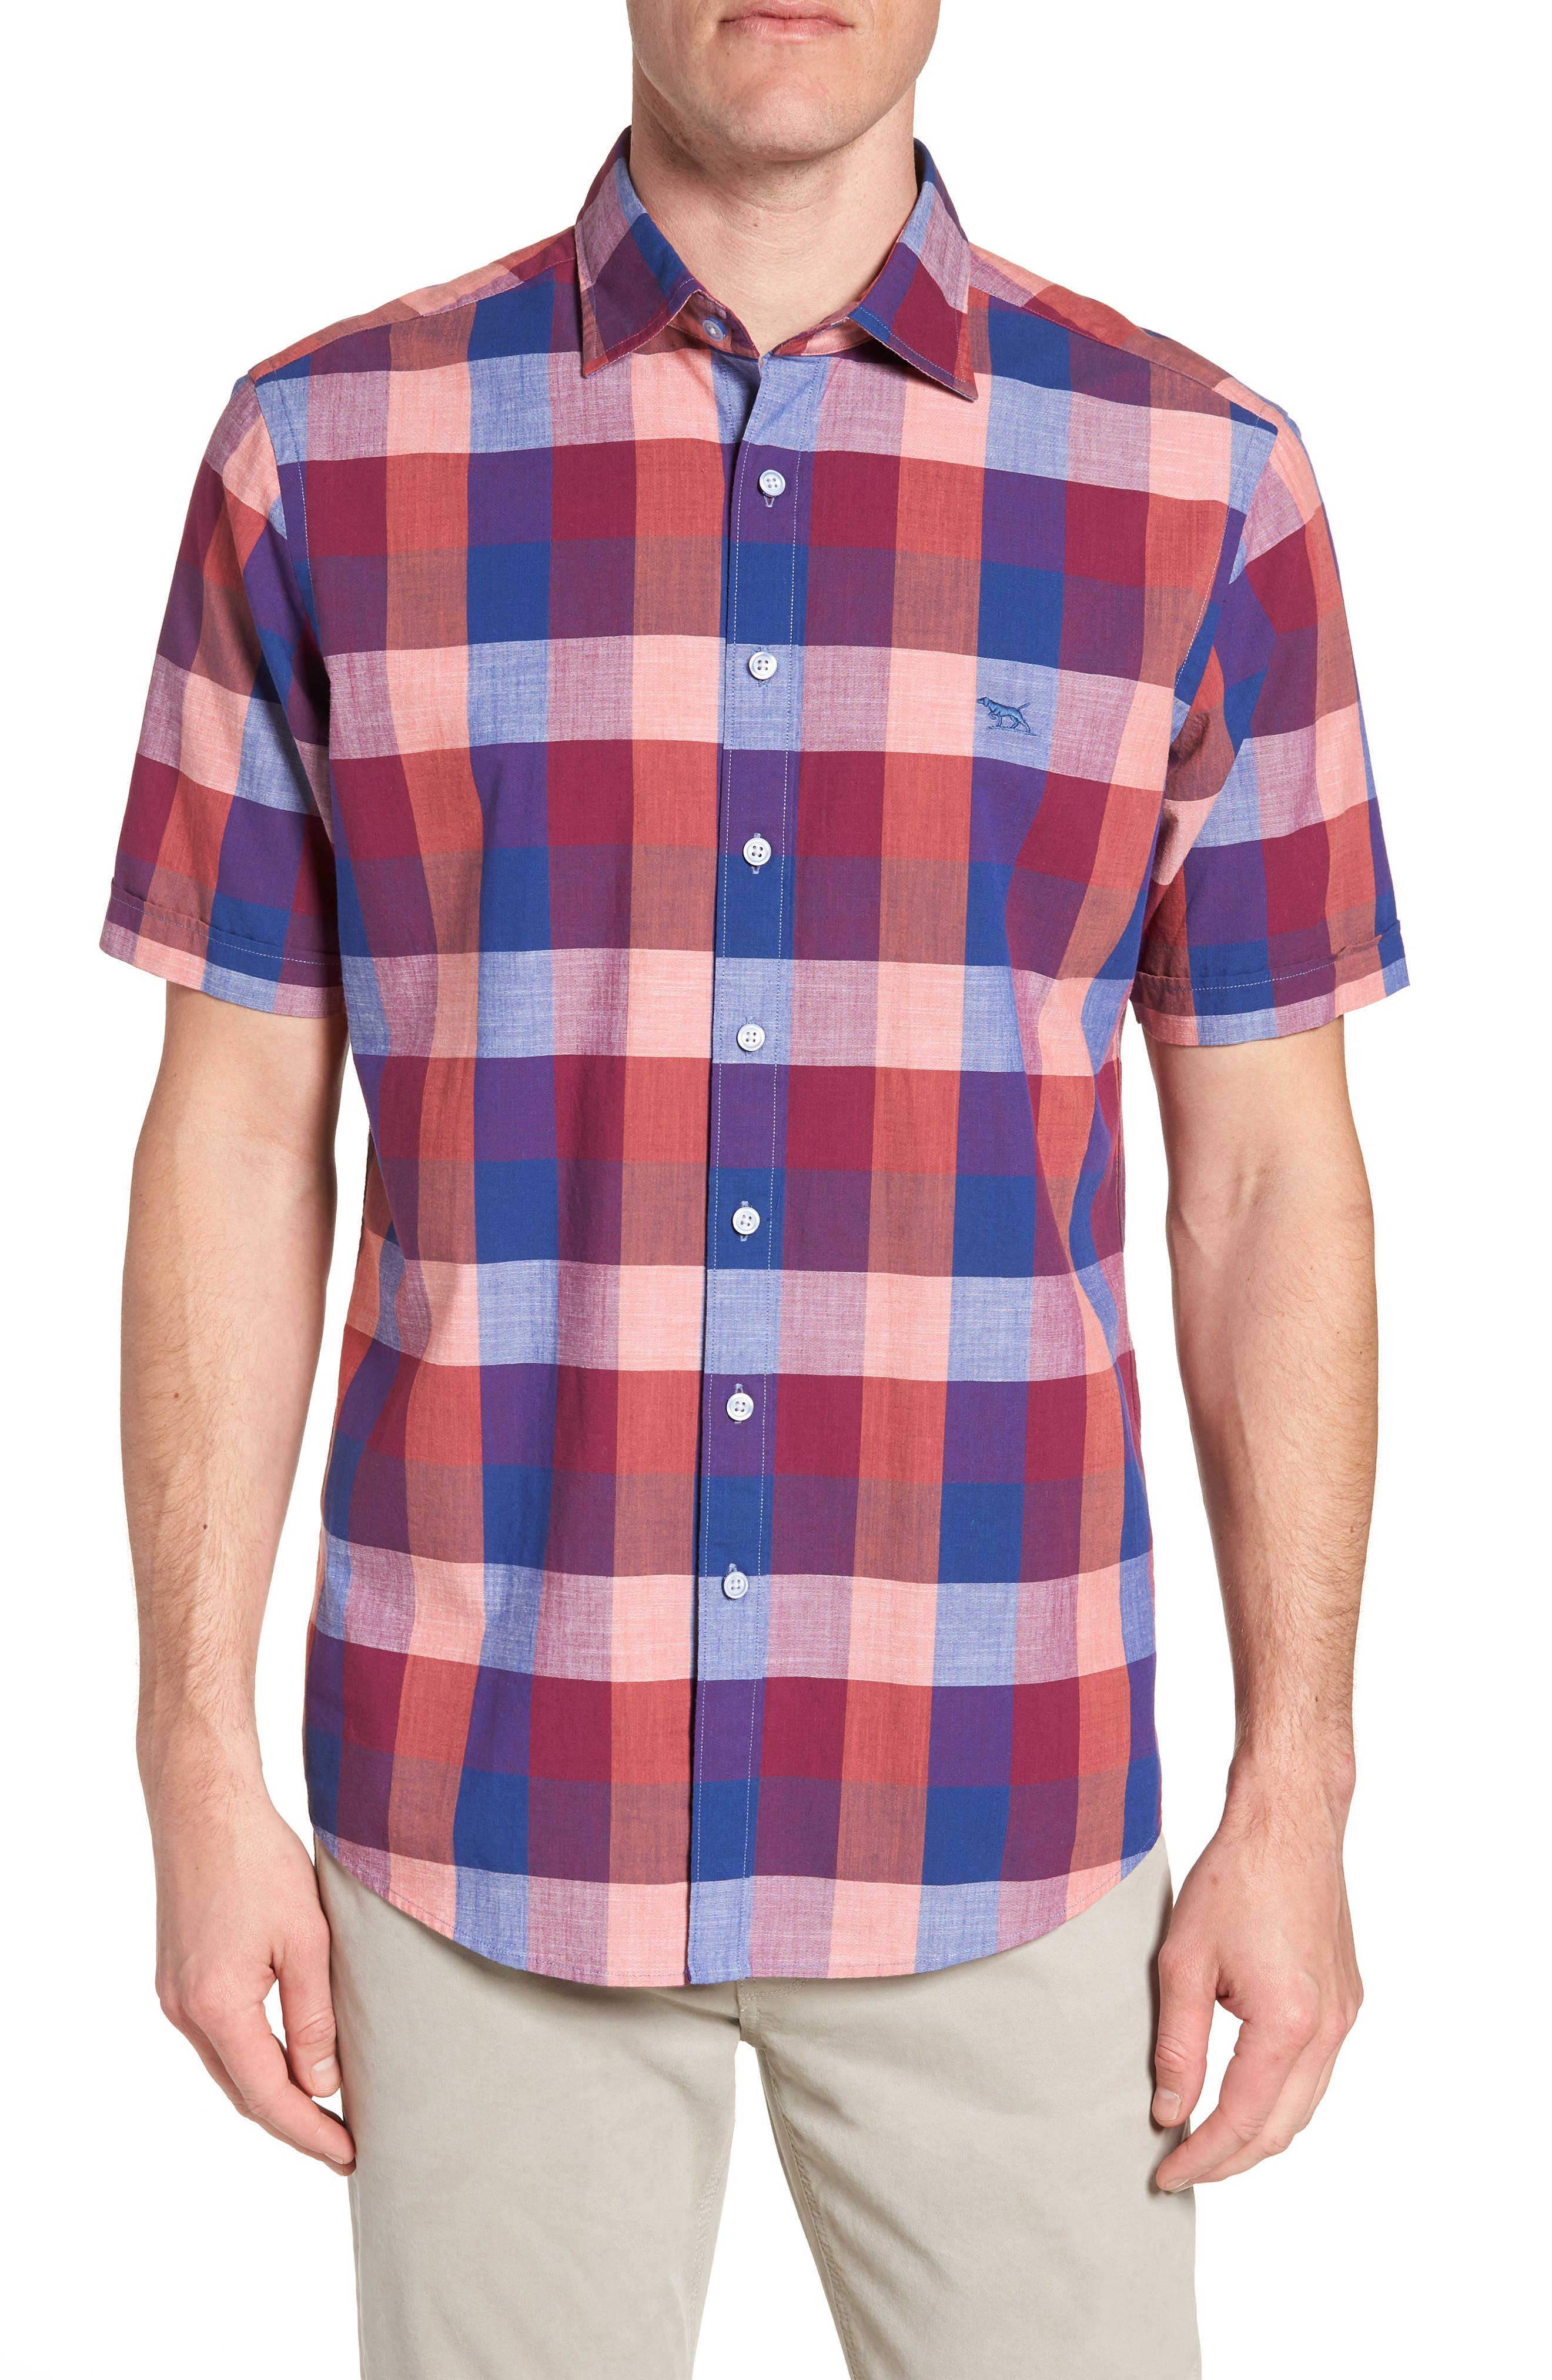 Knighton Regular Fit Sport Shirt,                         Main,                         color, Berry